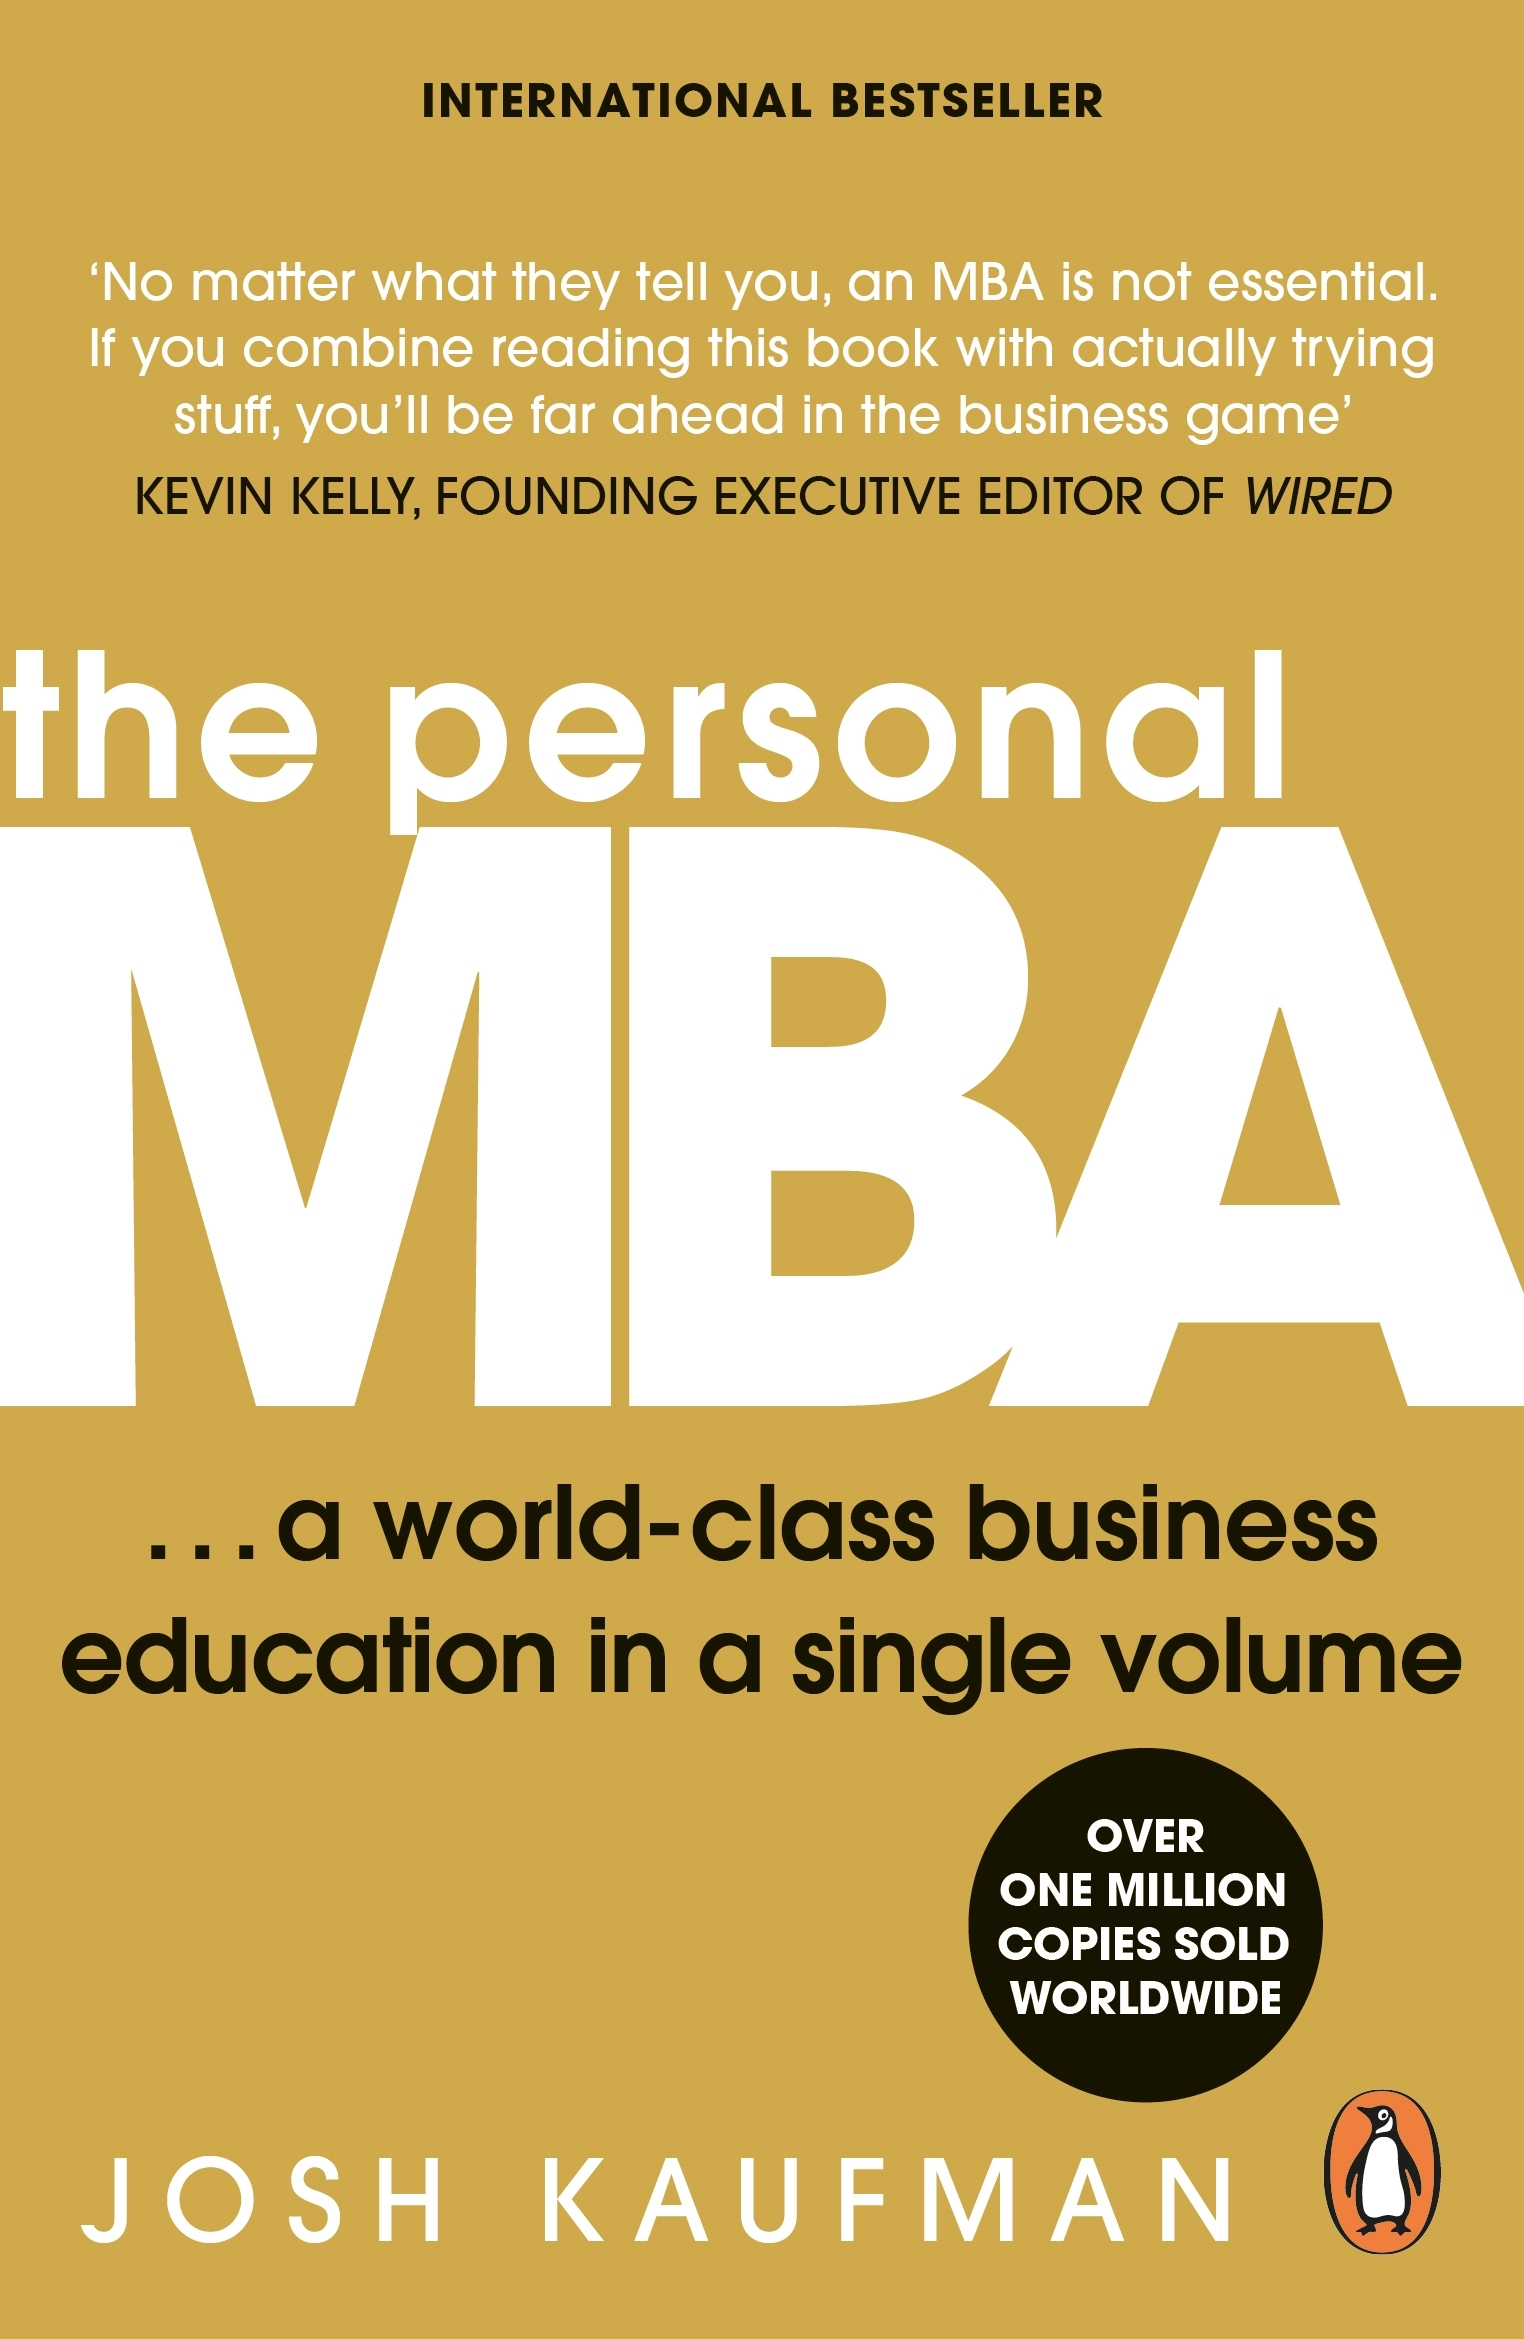 The Personal Mba by Josh Kaufman - Penguin Books Australia